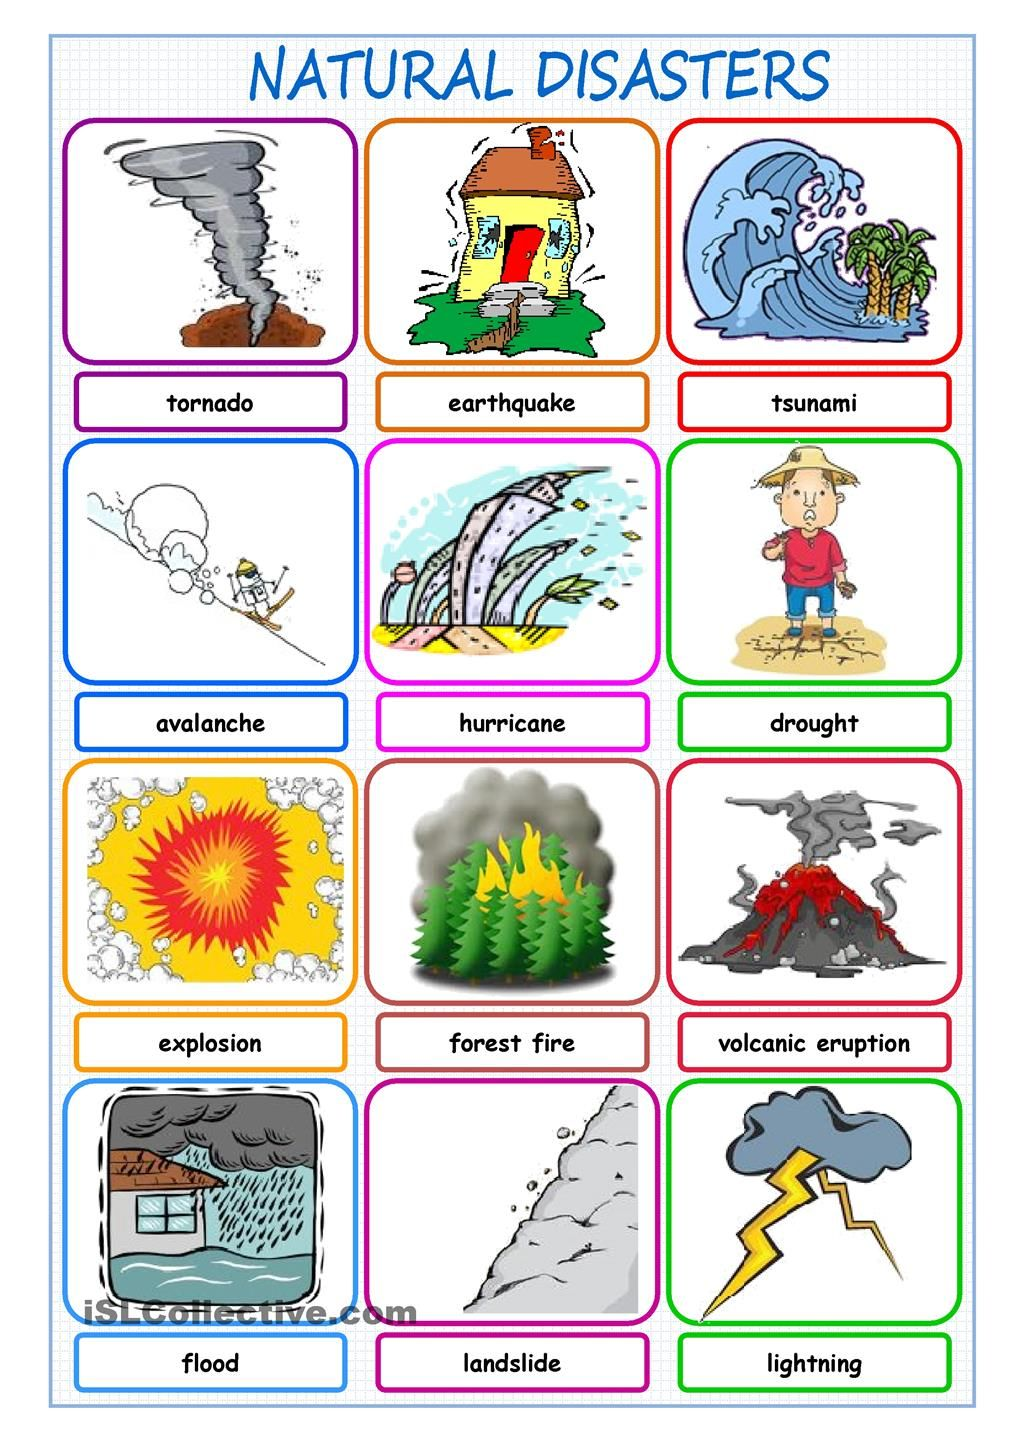 Natural Disasters Picture Dictionary Natural Disasters Natural Disasters For Kids Natural Disasters Activities